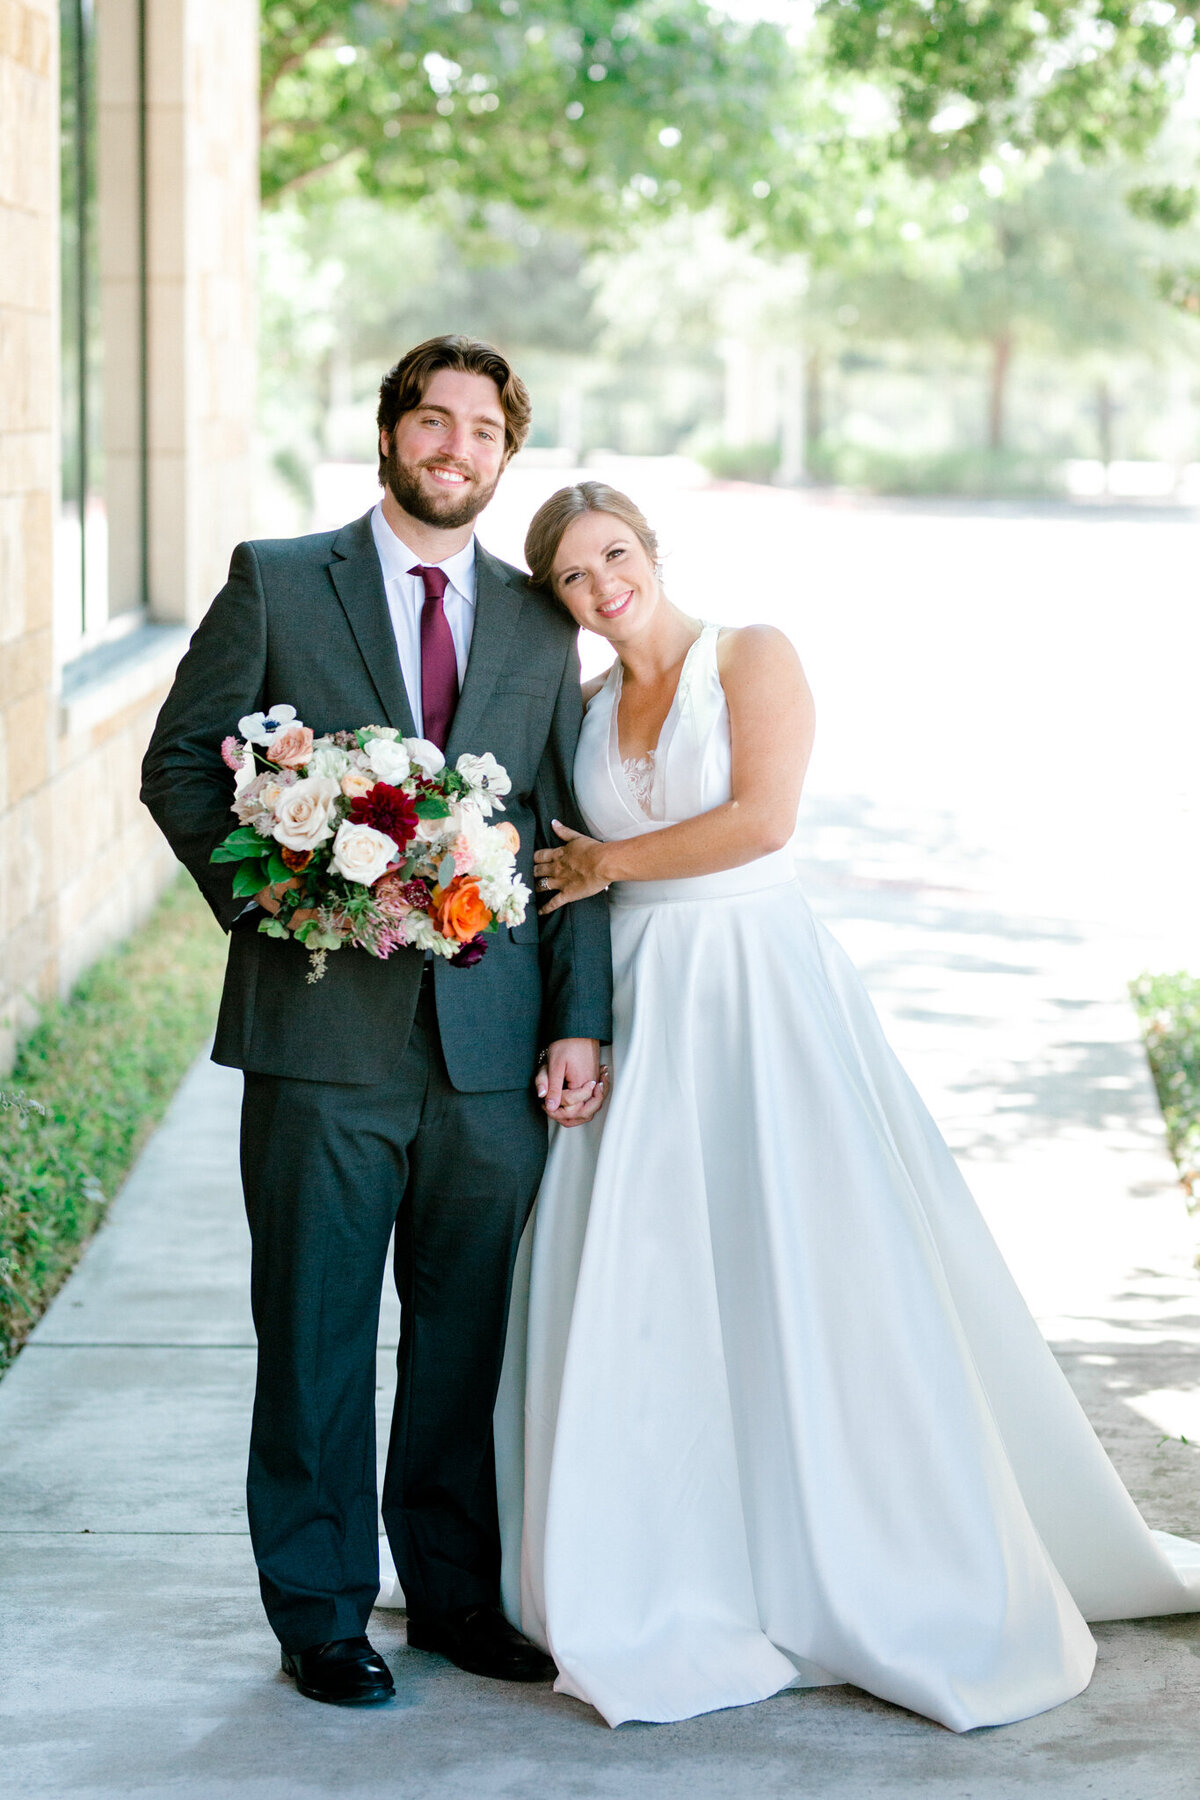 Kaylee & Michael's Wedding at Watermark Community Church | Dallas Wedding Photographer | Sami Kathryn Photography-6